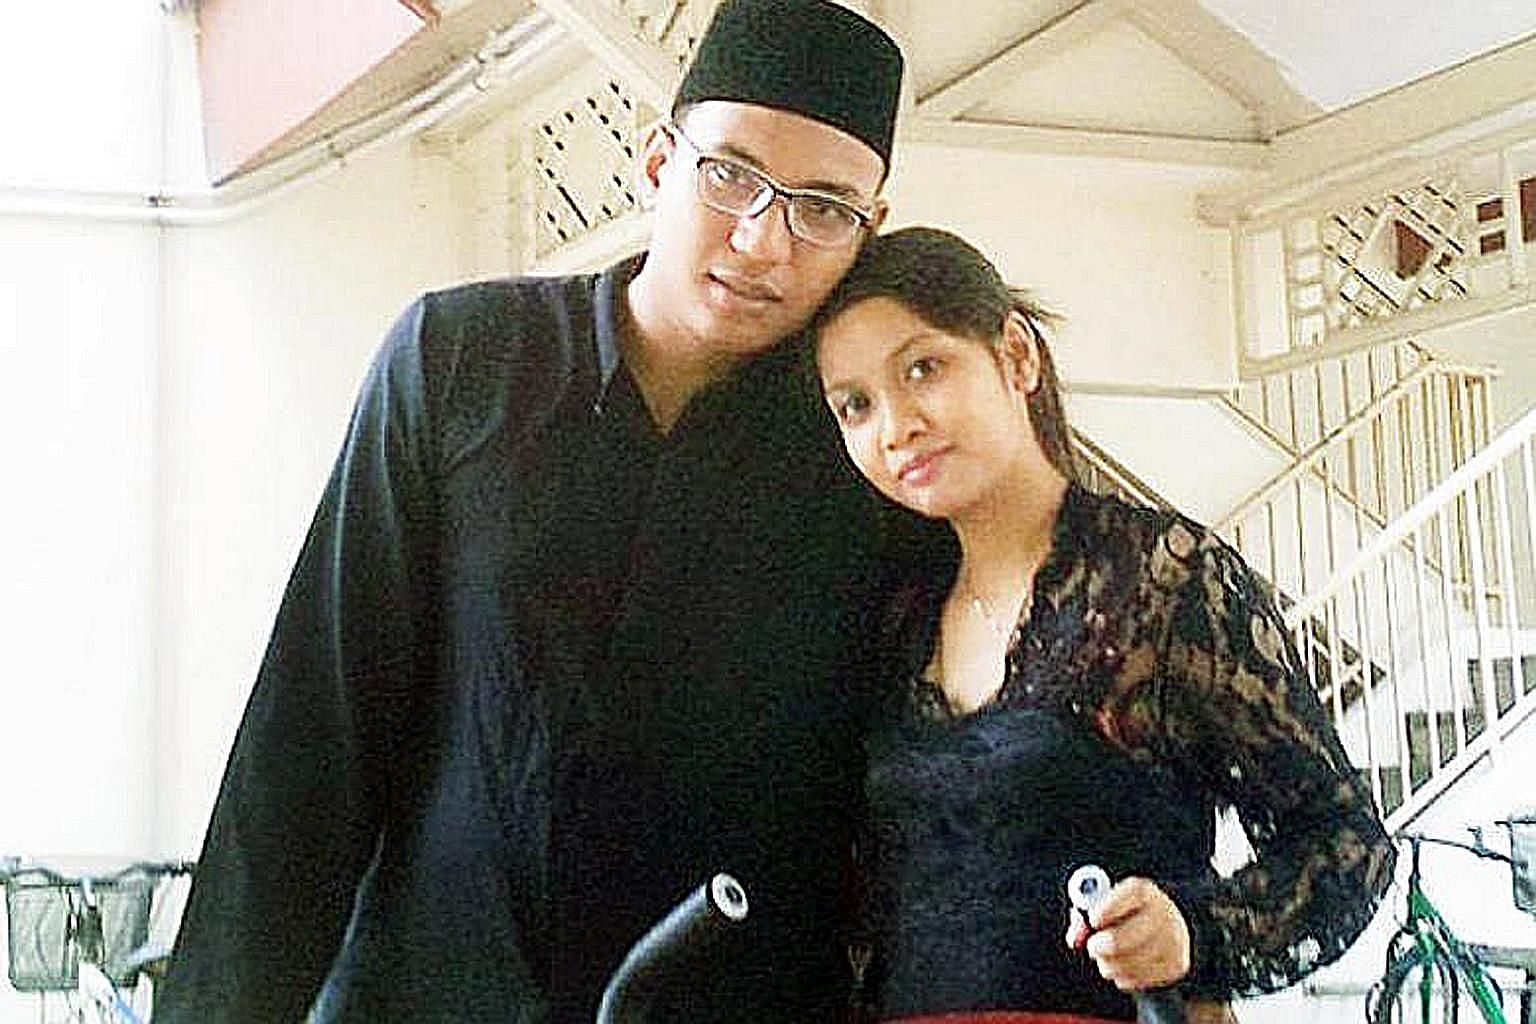 Azlin Arujunah and her husband Ridzuan Mega Abdul Rahman, seen here in a photo posted on social media, are on trial for murder by common intention, for inflicting severe scald injuries on their son.